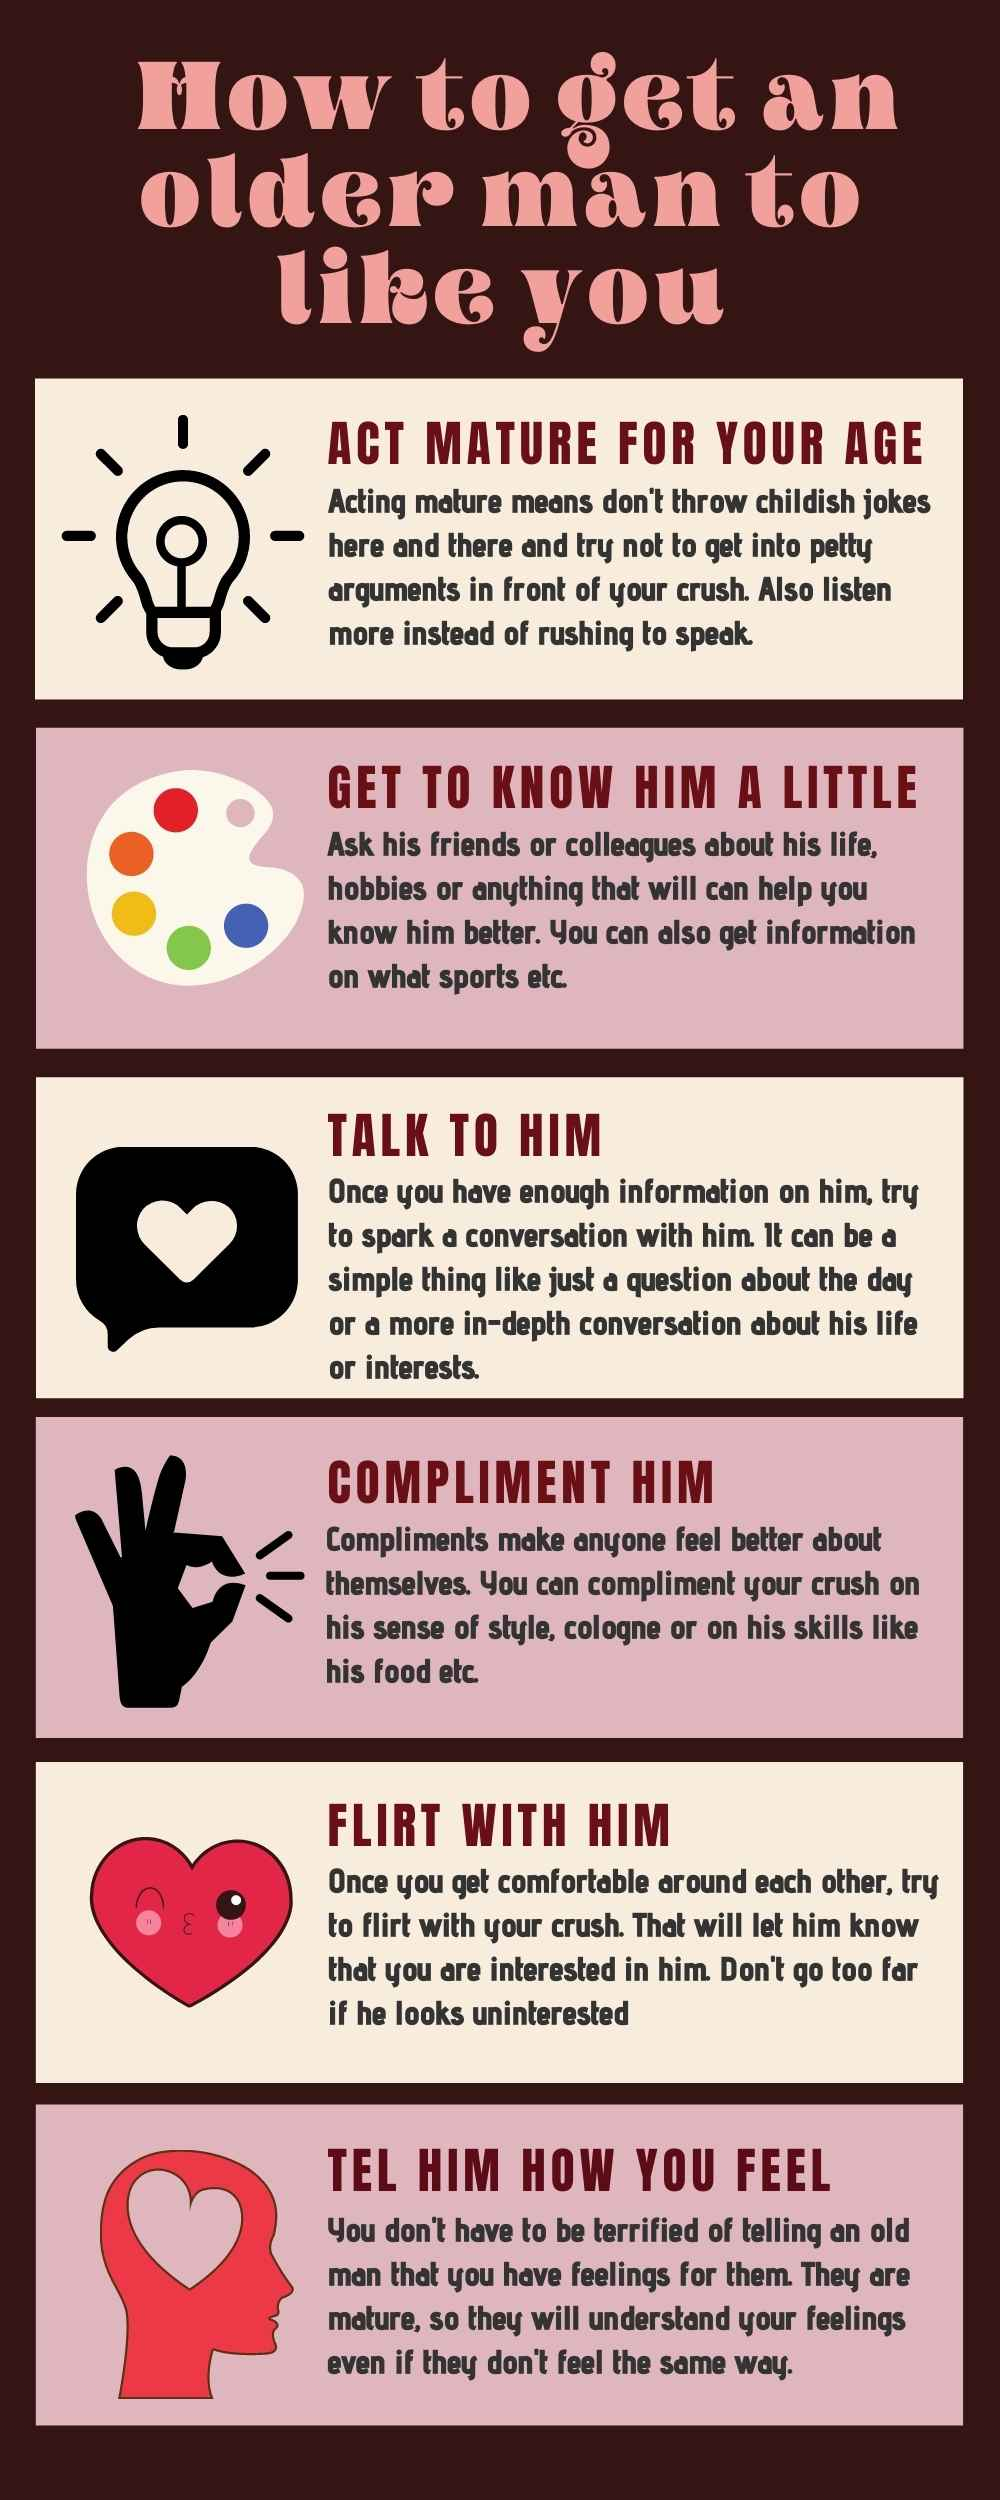 How to get an older man to like you